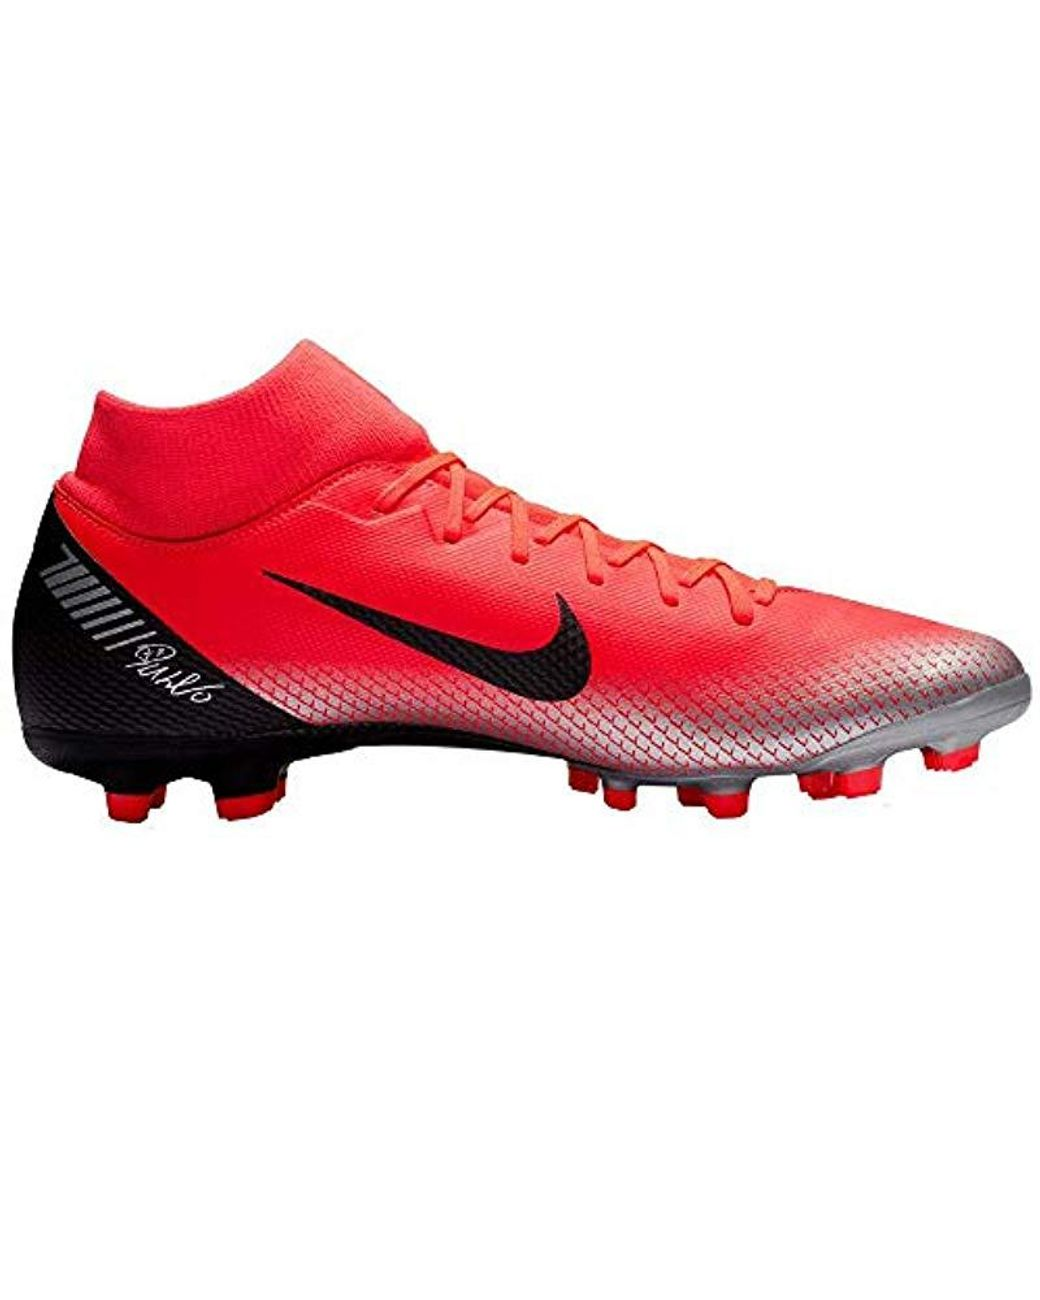 best service 689e9 6d747 Nike Synthetic Superfly 6 Academy Cr7 Mg Football Boots in ...